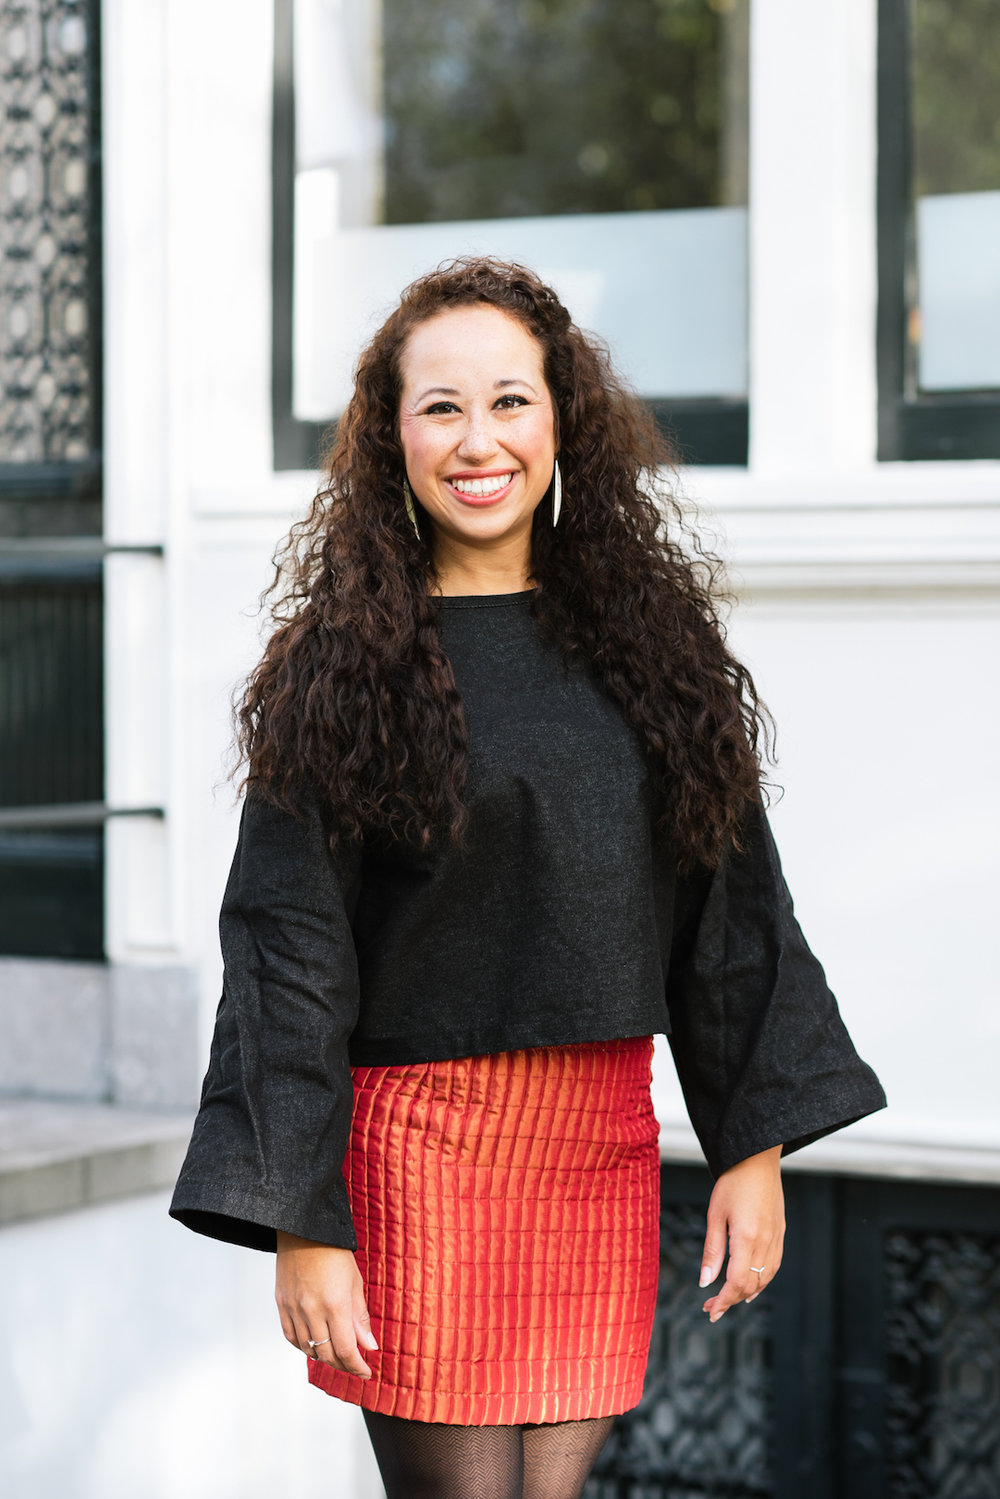 Flare sleeve top with red skirt // A Week Of Modern & Cozy Fall Outfits With Lifestyle Blogger & Life Coach Hailey Noa on The Good Trade